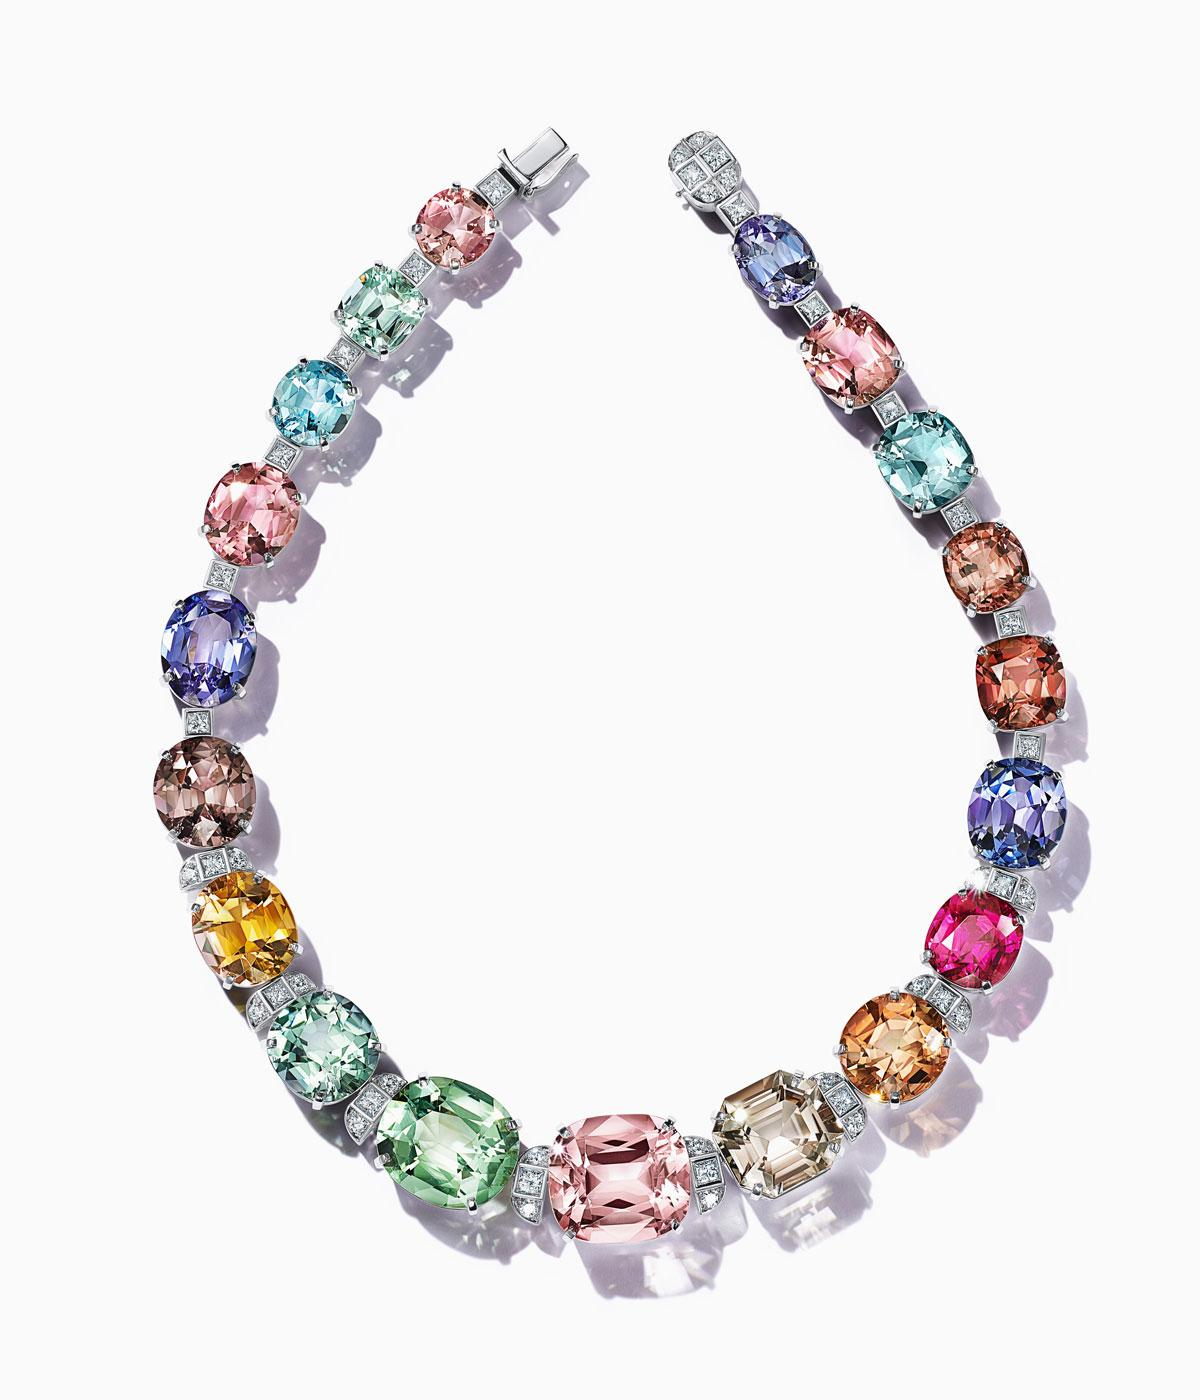 Tiffany & Co brightly coloured necklace